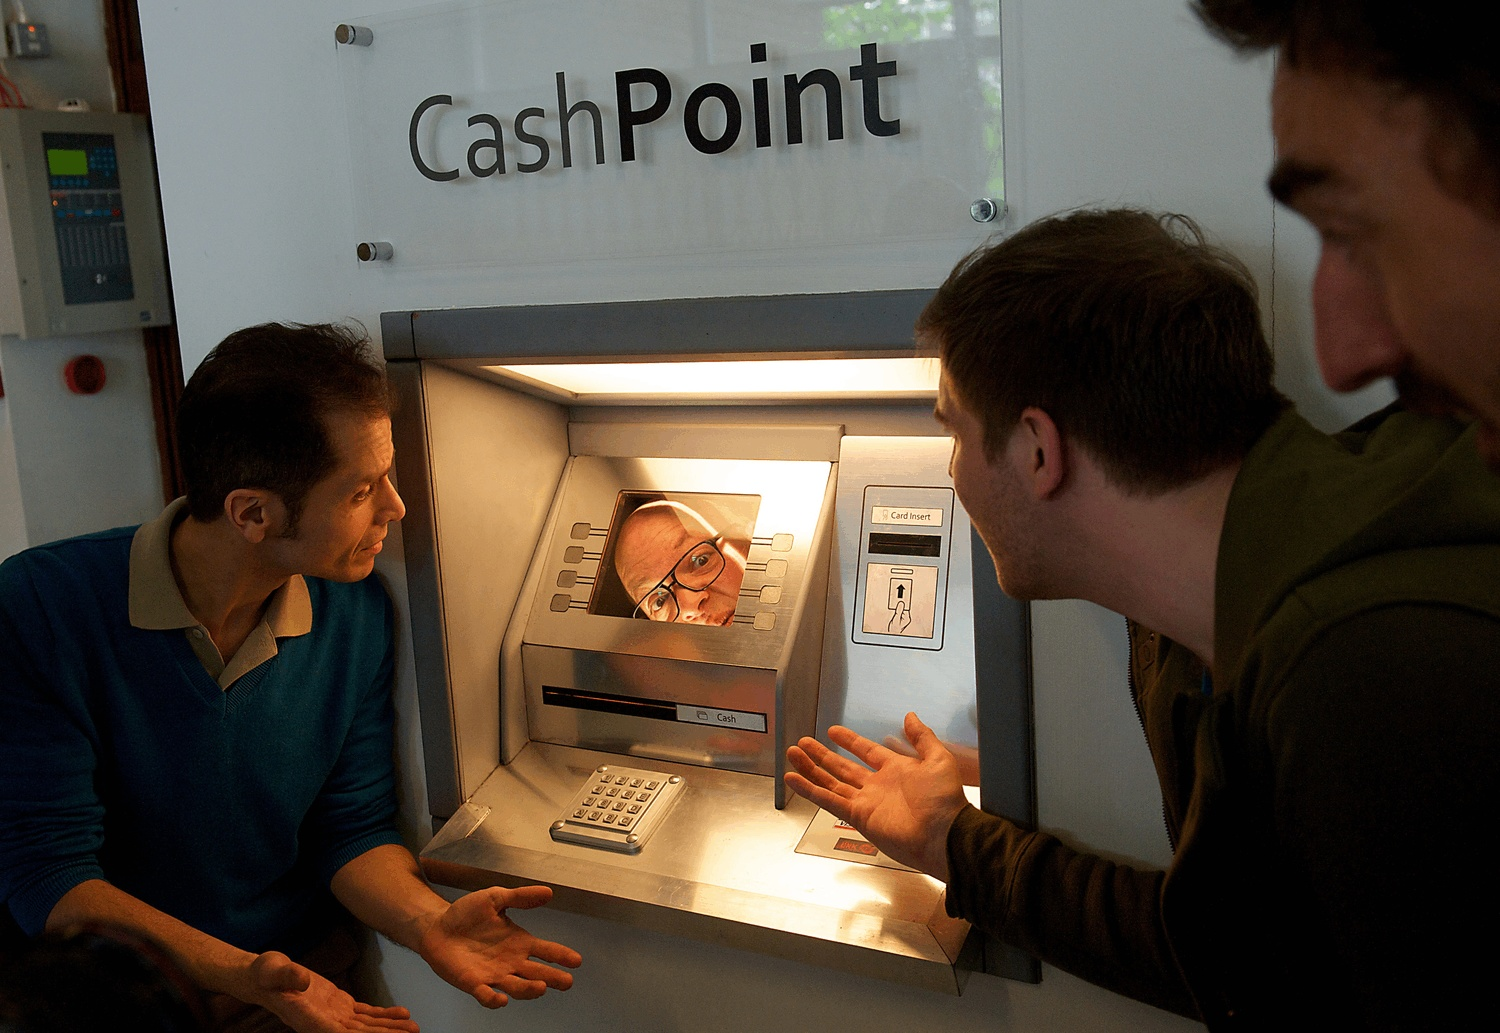 A man's face appears from inside a cash point, as 3 people look on.